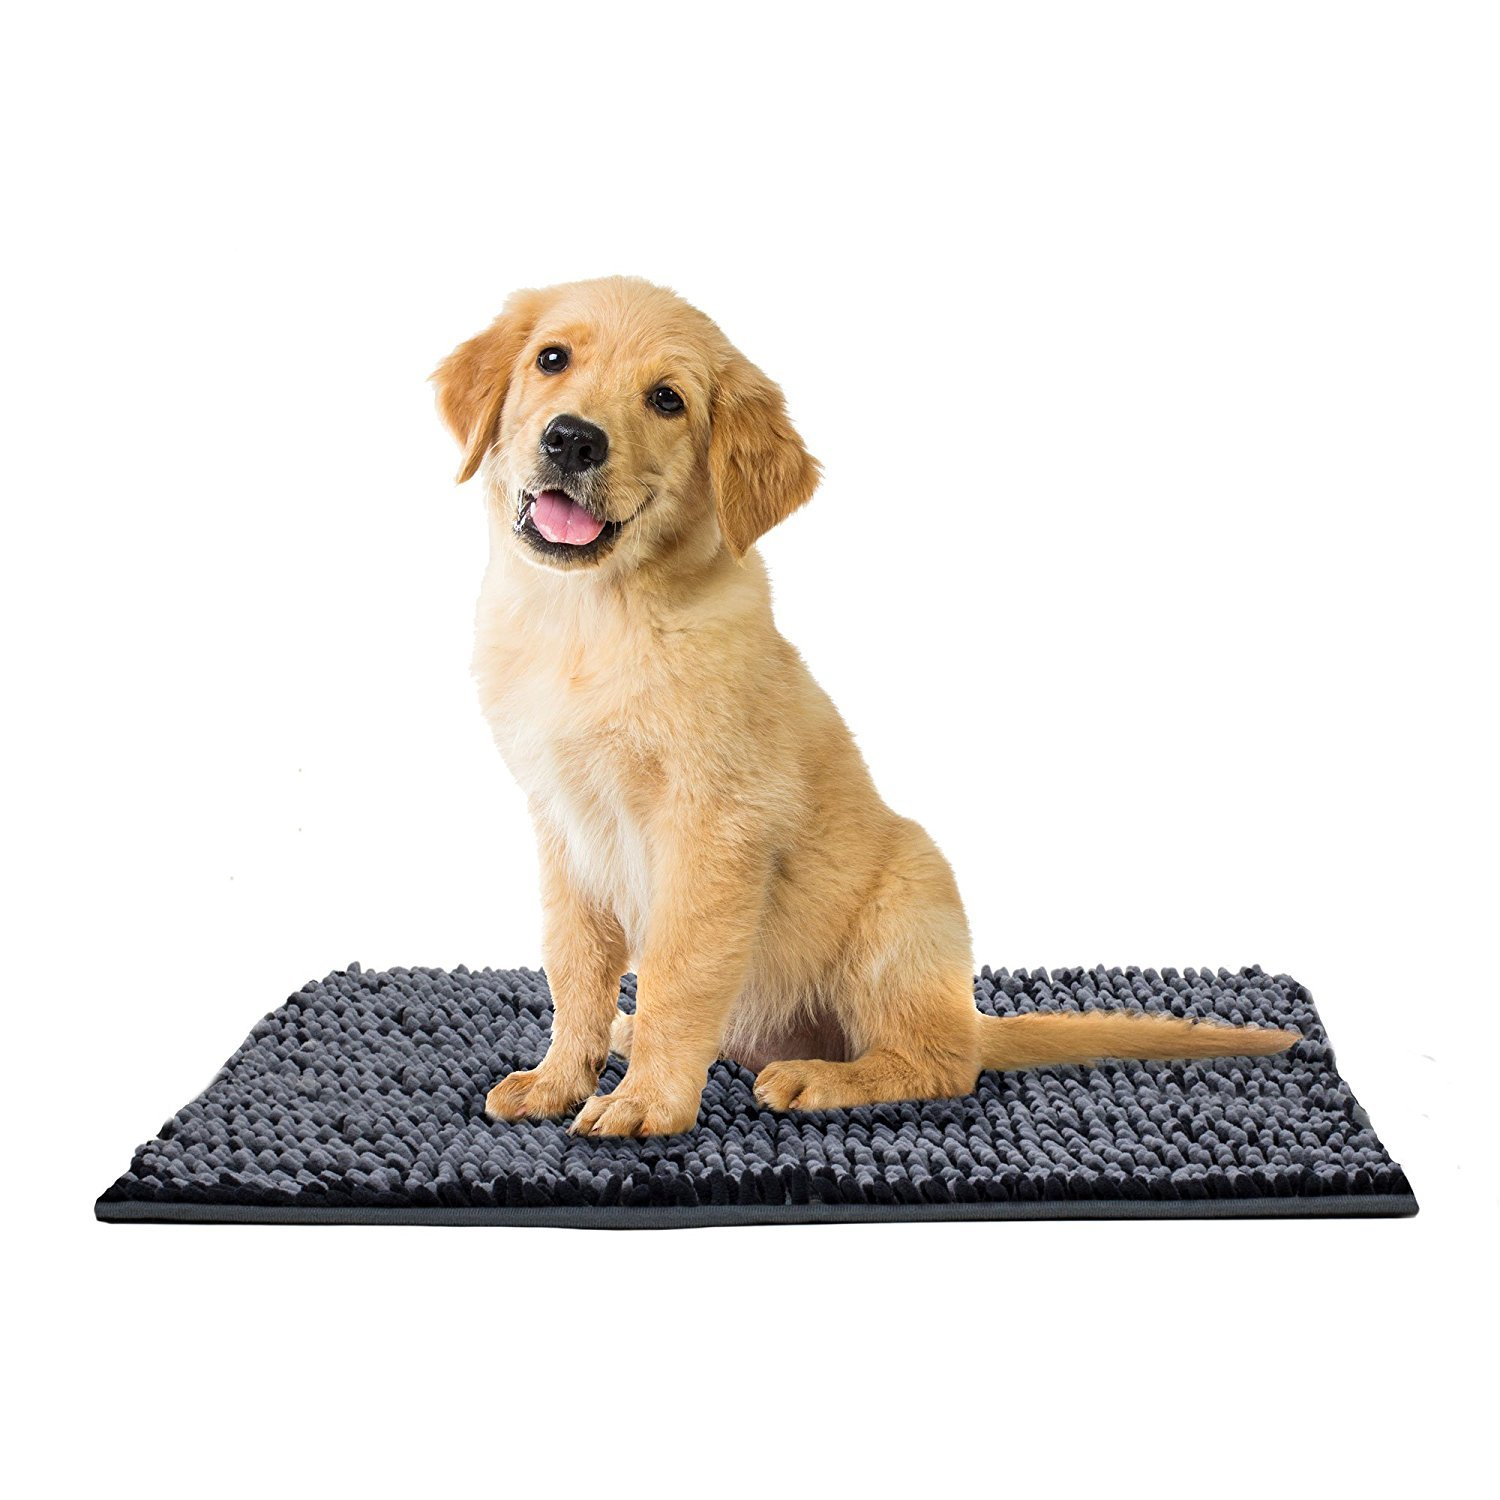 Dog Cat Pet Absorbent Microfiber Chenille Rug (24''x17'', Charcoal/Grey) by Pooch Pen (Image #4)